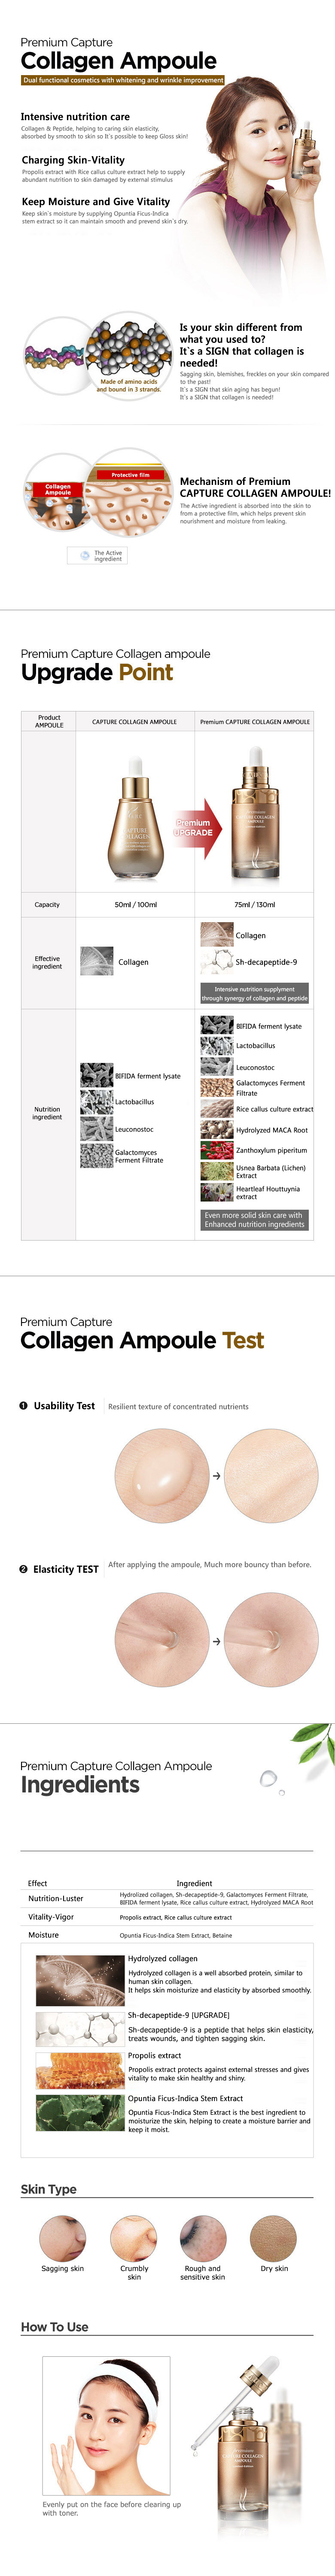 AHC Premium Capture Collagen Ampoule malaysia singapore brunei